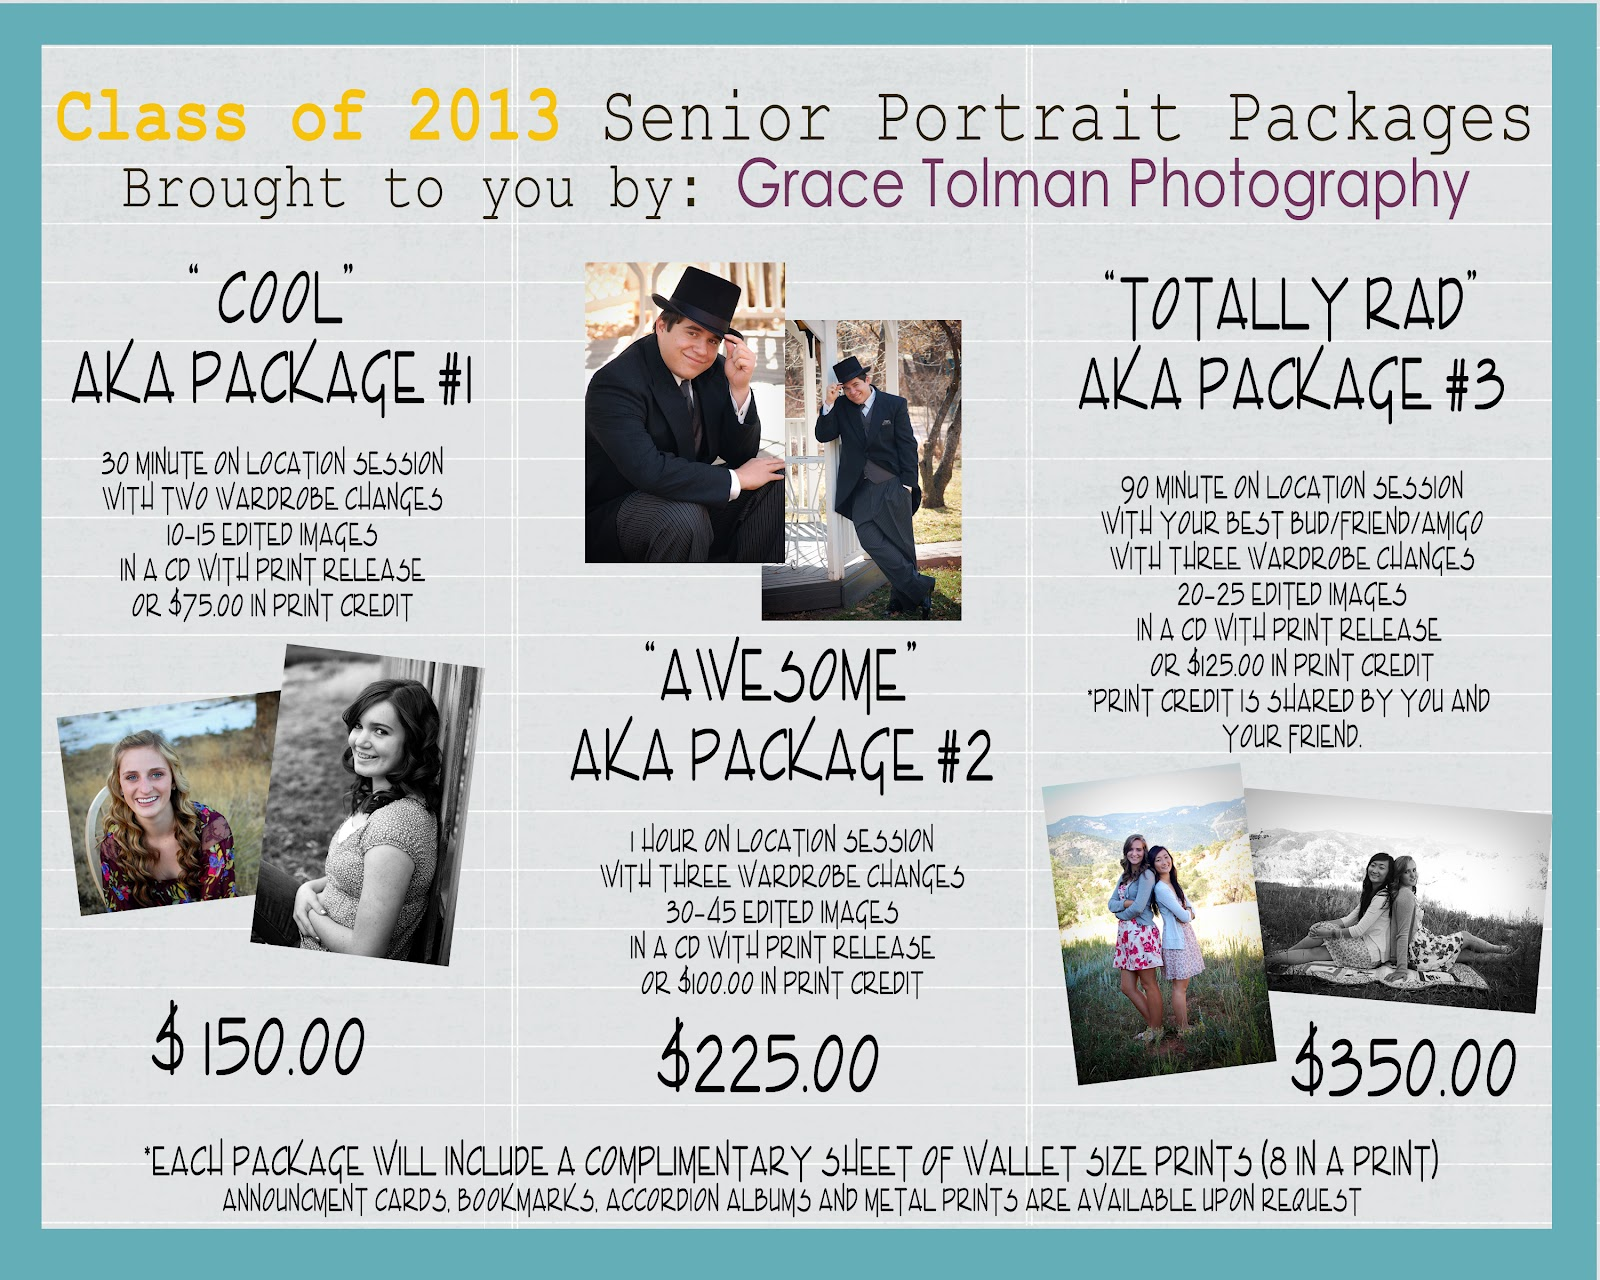 Gracetolmanphotography Class 2013 Senior Portrait Packages